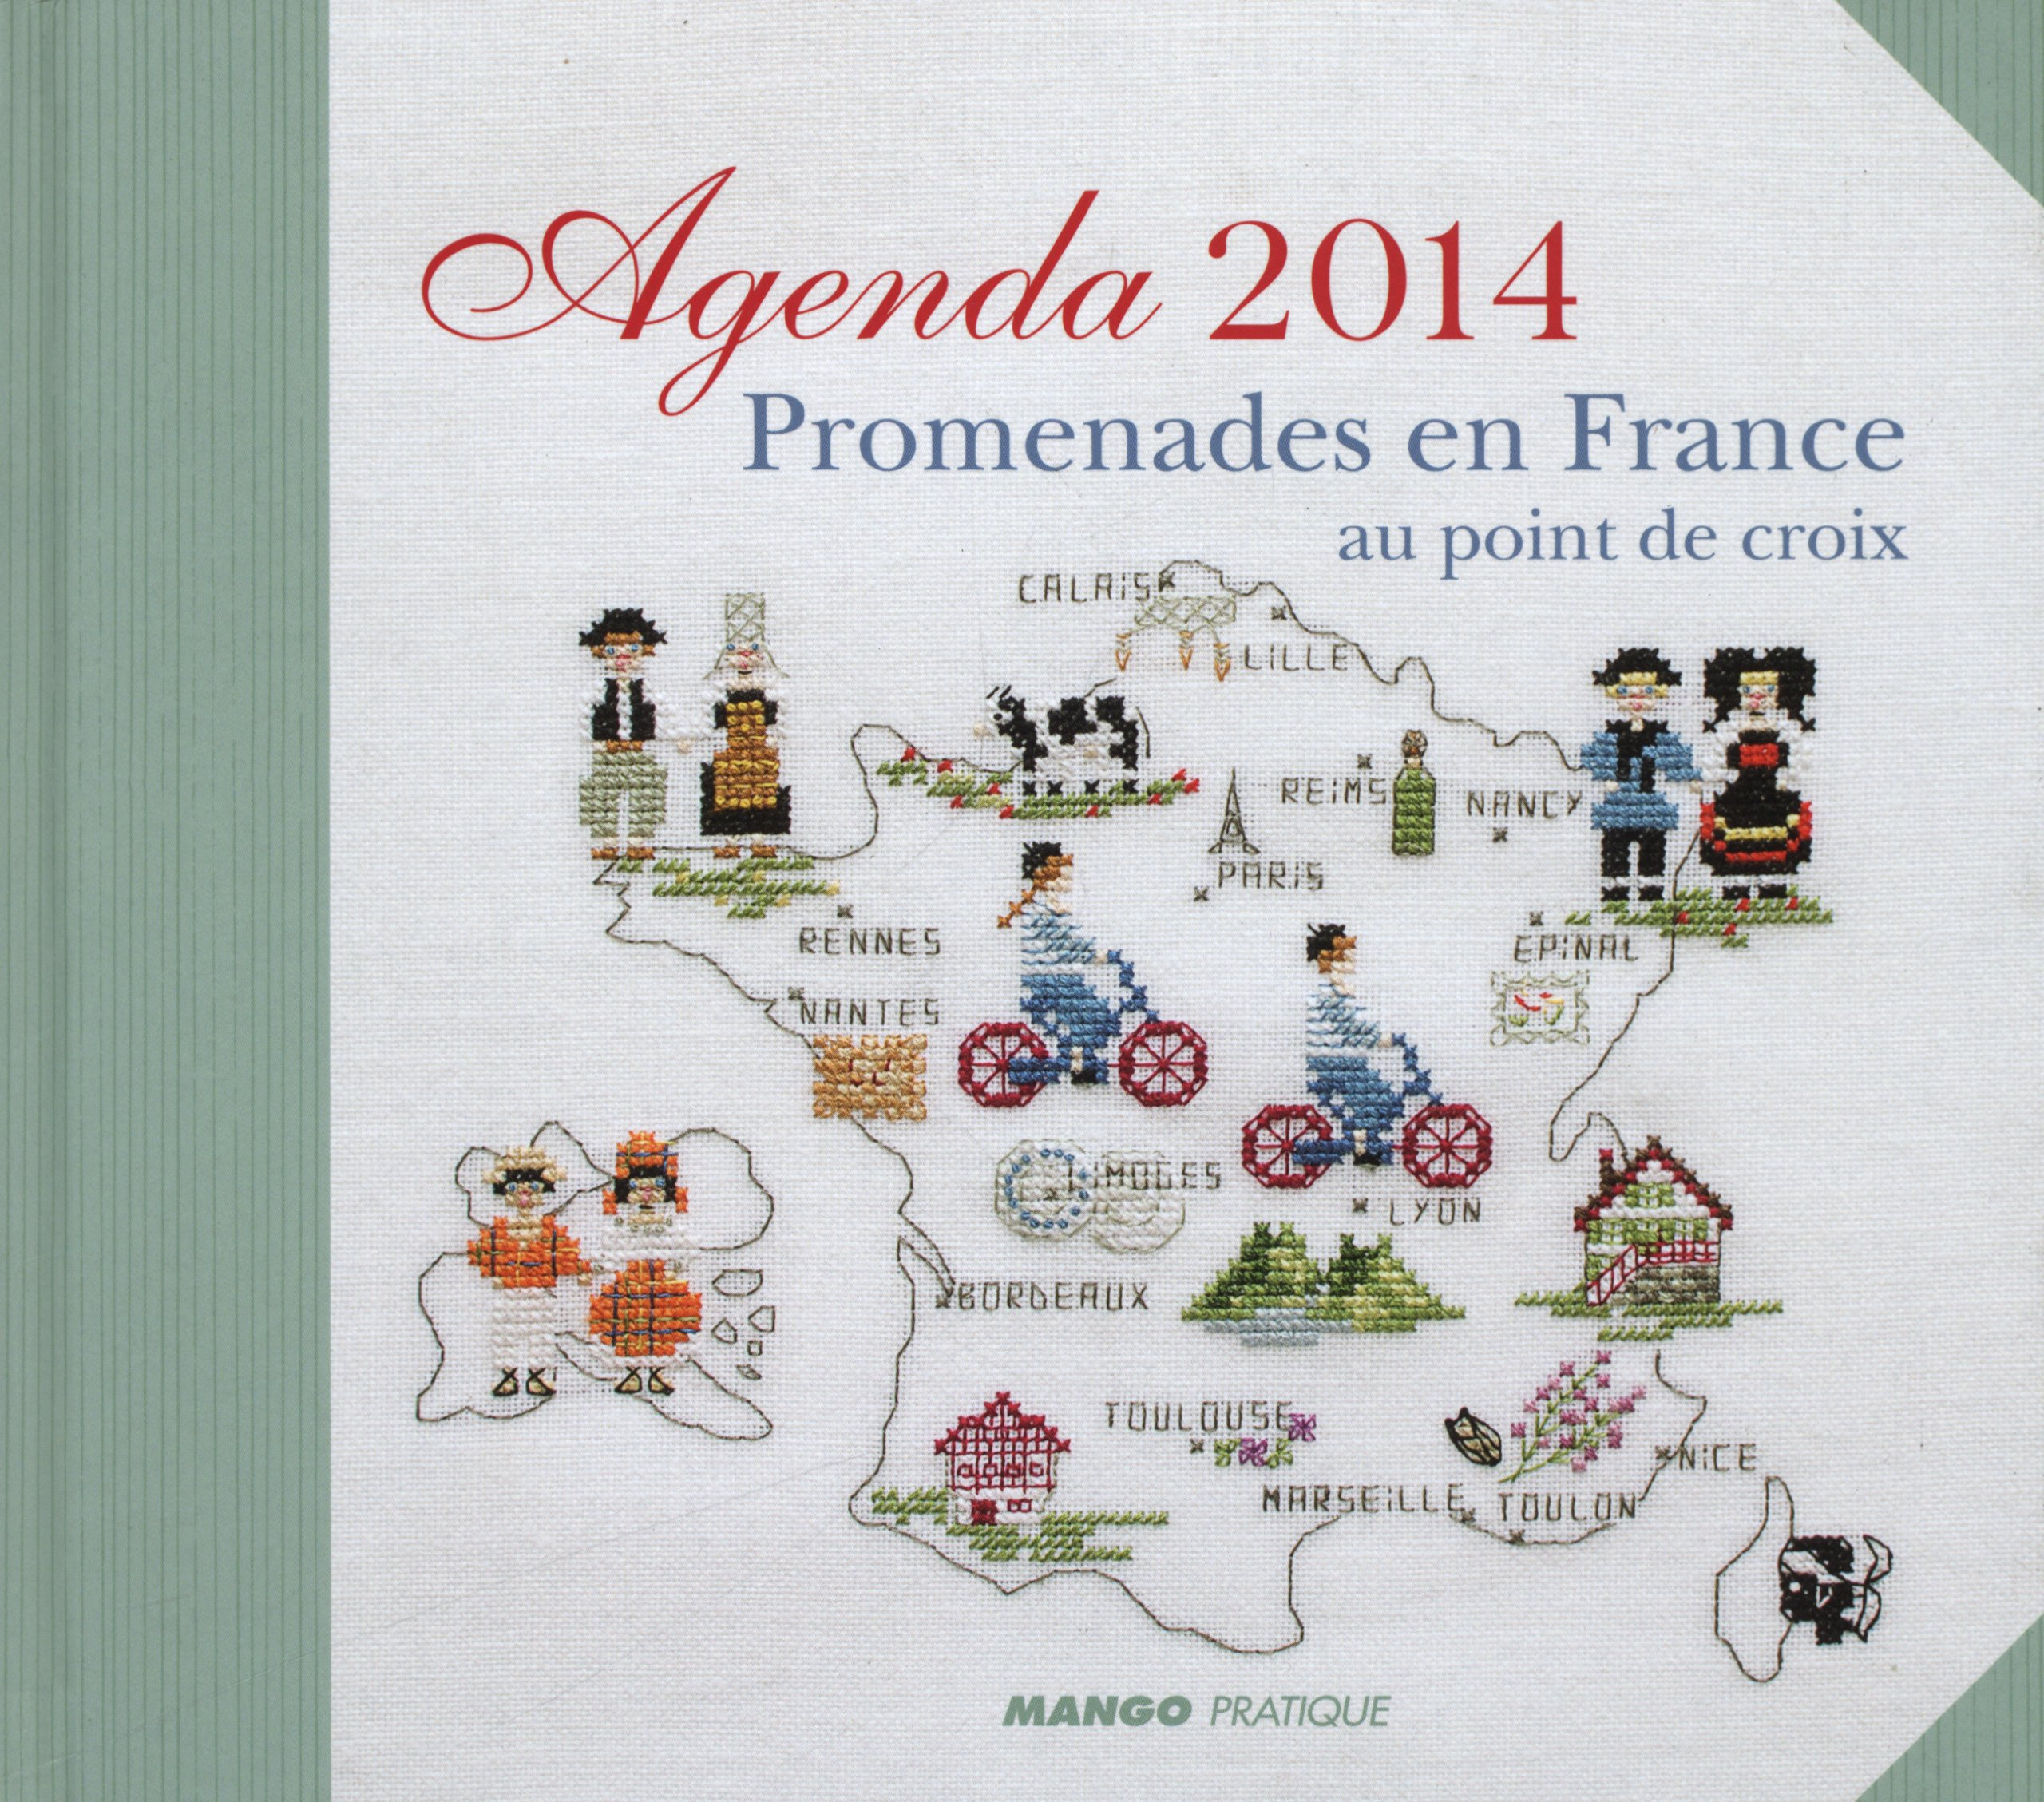 Agenda 2014 Promenade En France Agenda Point De Croix French Edition Collectif 9782812501166 Amazon Com Books